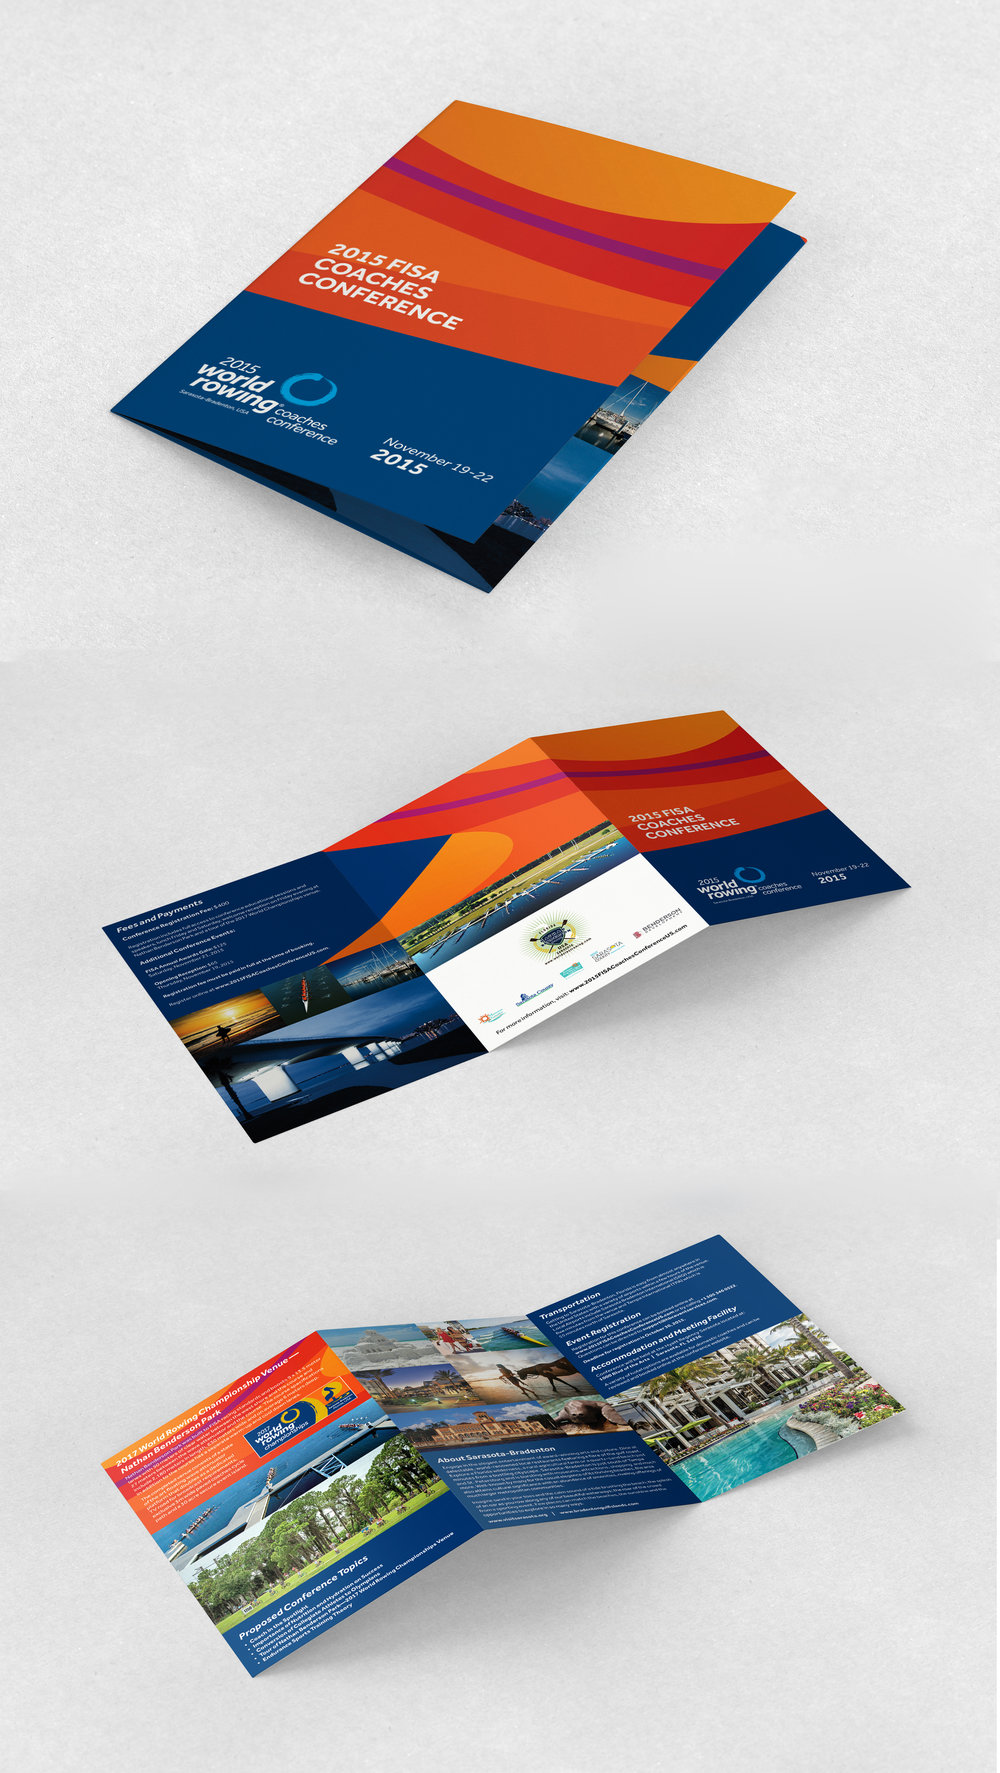 PROJECT: 2015 FISA COACHES CONFERENCE BROCHURE CLIENT: SANCA/NBP AND WORLD ROWING CHAMPIONSHIPS ROLE: DESIGNER, ART DIRECTOR